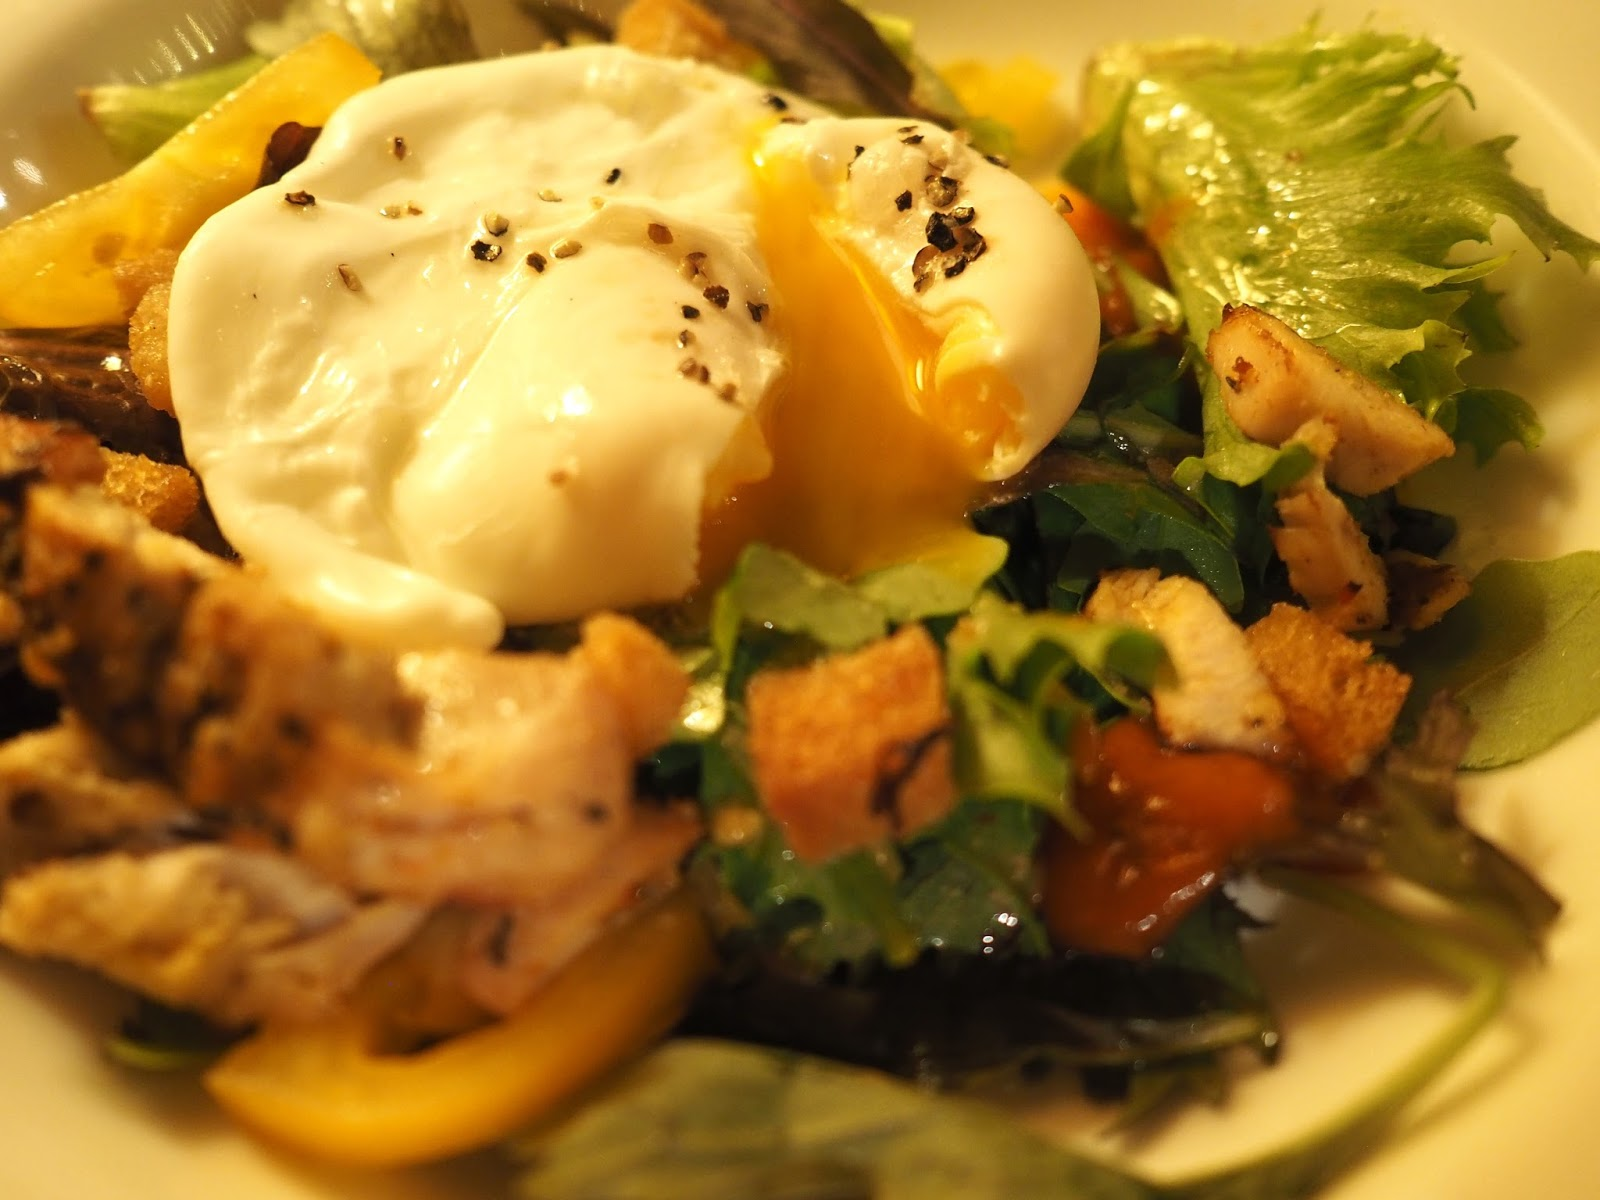 Poached egg and spiced chicken salad at Le Caveau, excellent French restaurant in Skipton, North Yorkshire